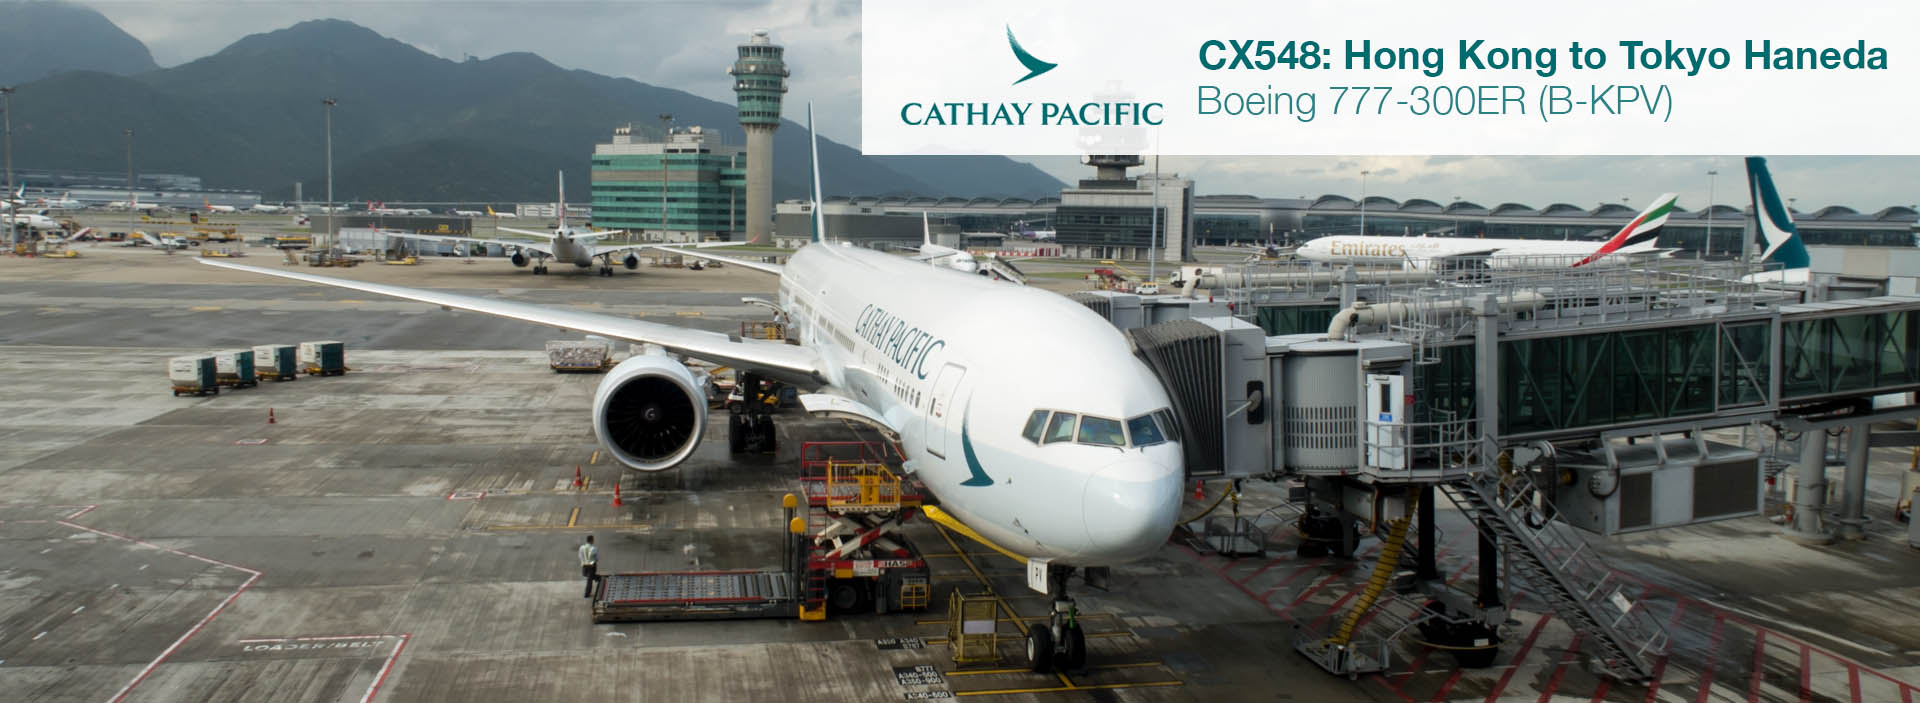 Flight Review: Cathay Pacific 777-300ER First Class from Hong Kong to Tokyo HND